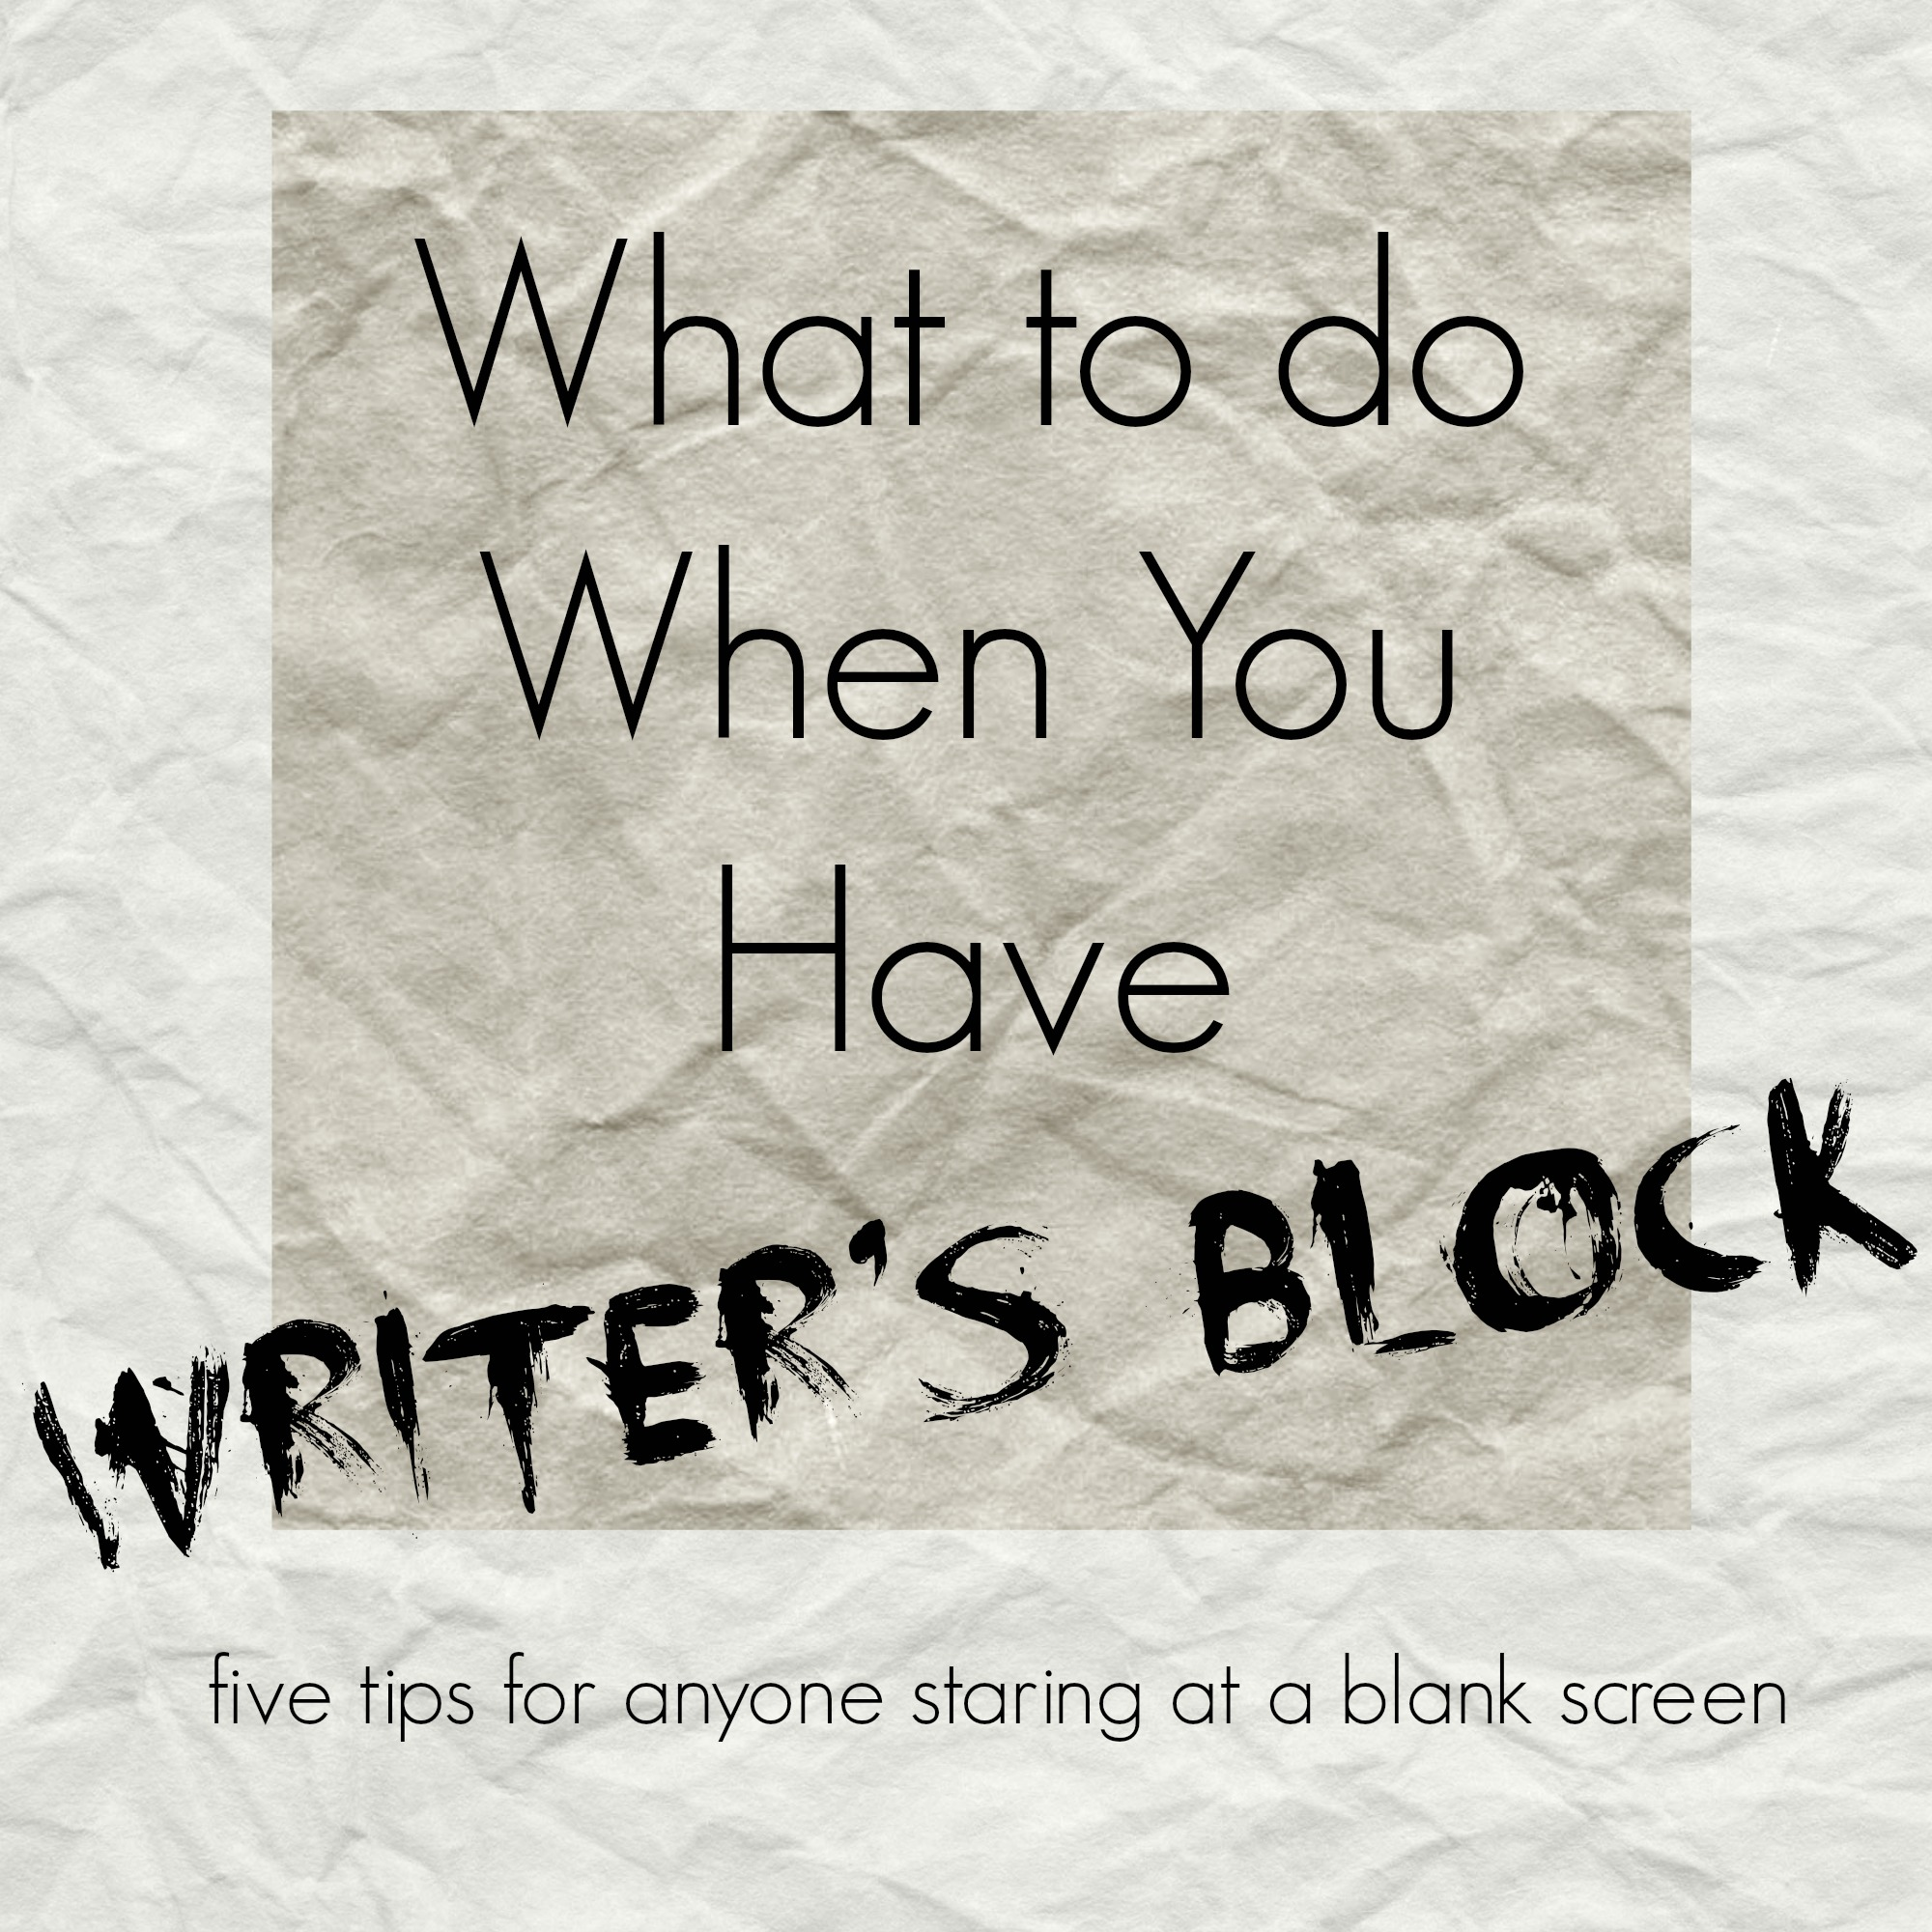 things to help with writers block 5 things to help with writer's block a few ways to find inspiration meredith morrison  comments writer's block is something everyone deals with at some point i .